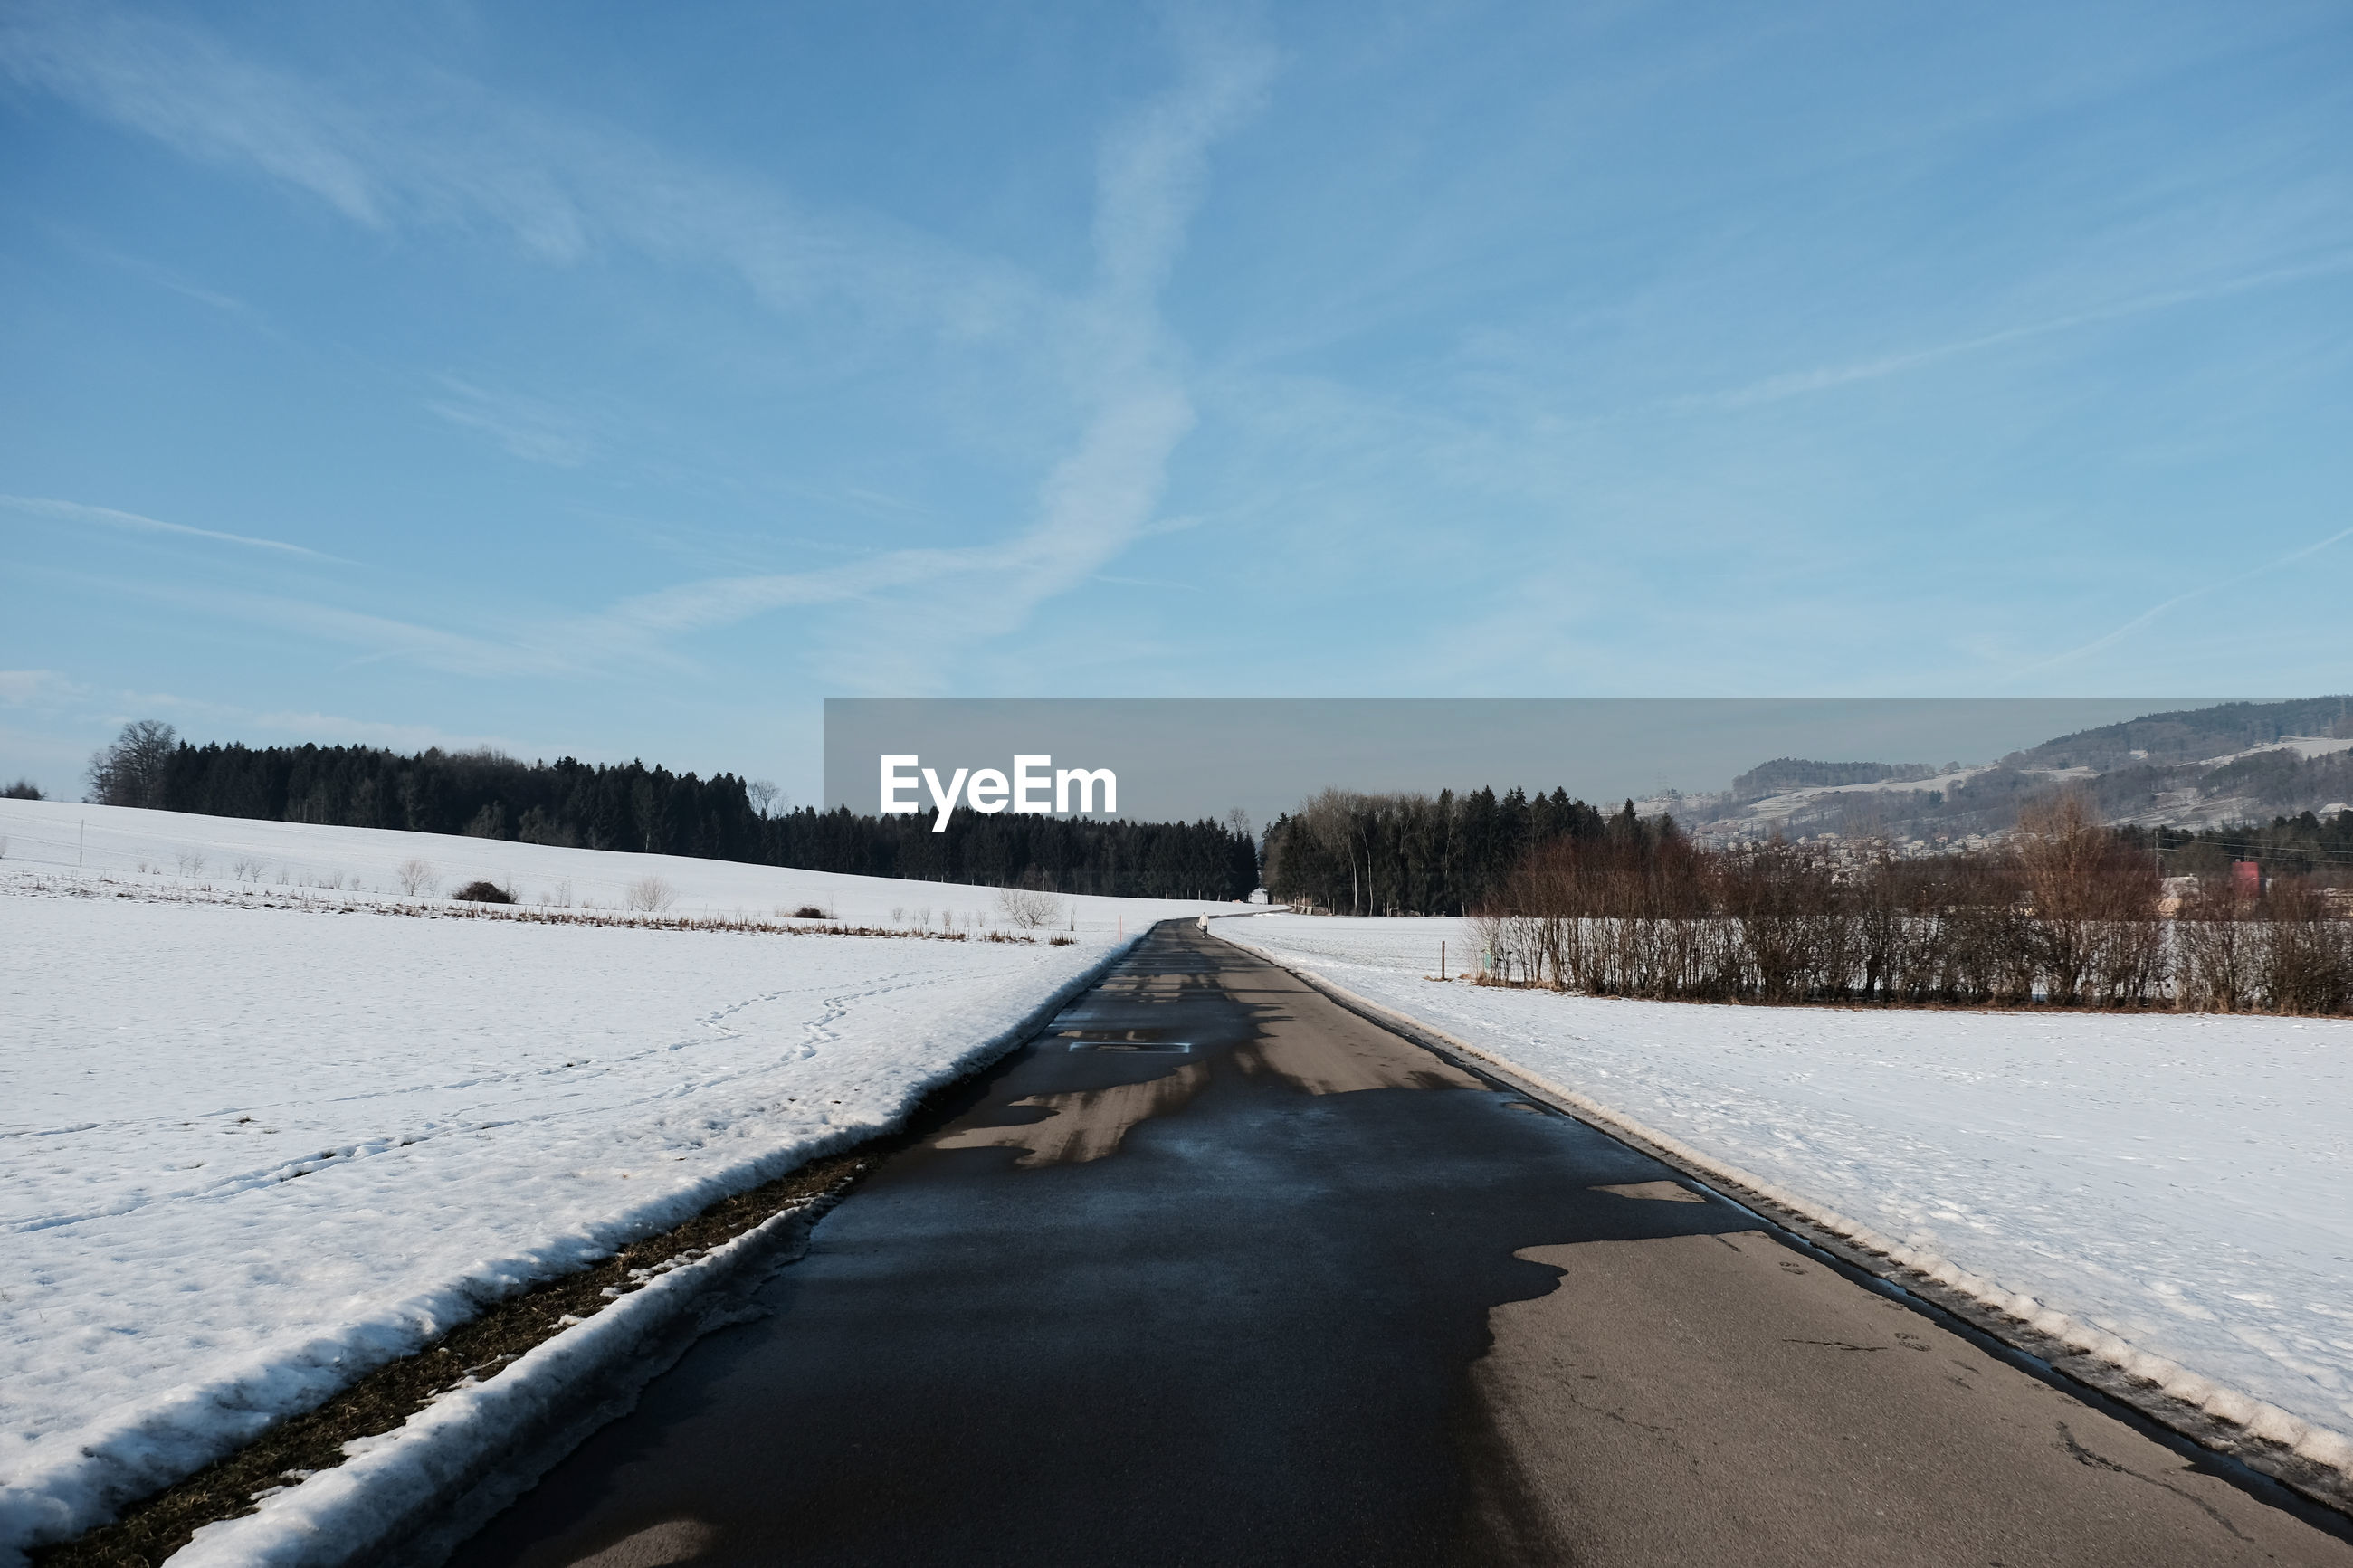 SCENIC VIEW OF WINTER AGAINST SKY